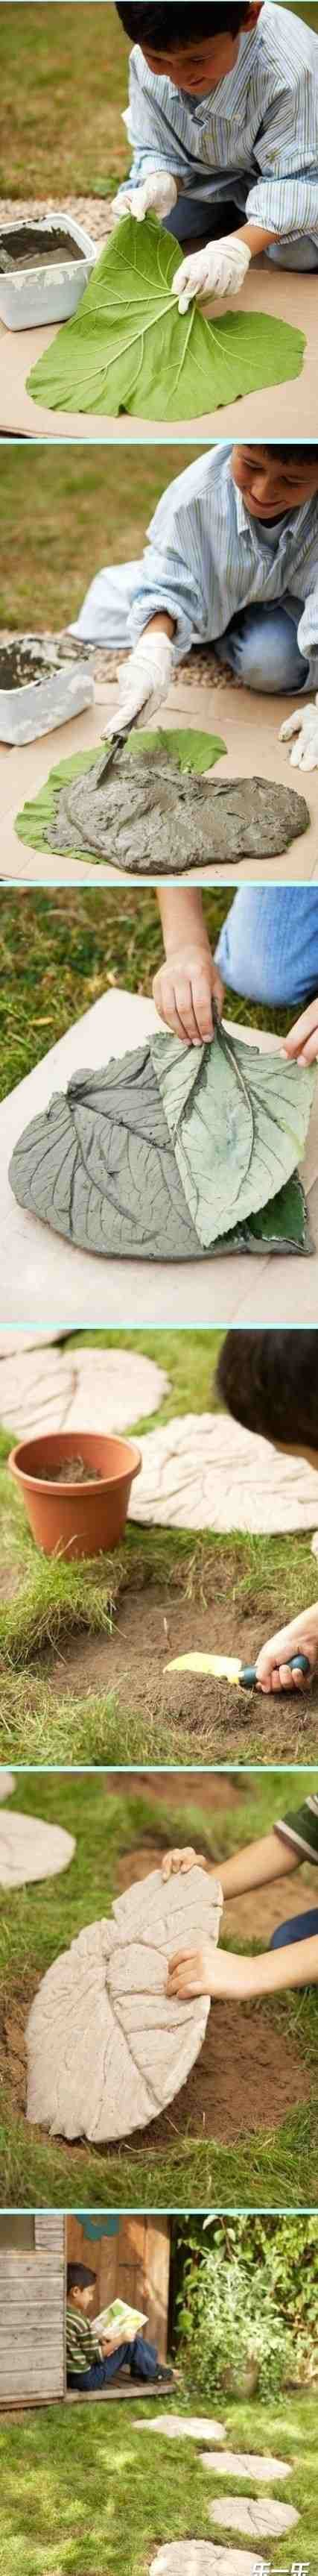 Homemade garden art ideas - We Have Decided To Show You Some Interesting Ideas For Homemade Garden Decorations The Crafts For The Garden Are Fun And With The Right Materials